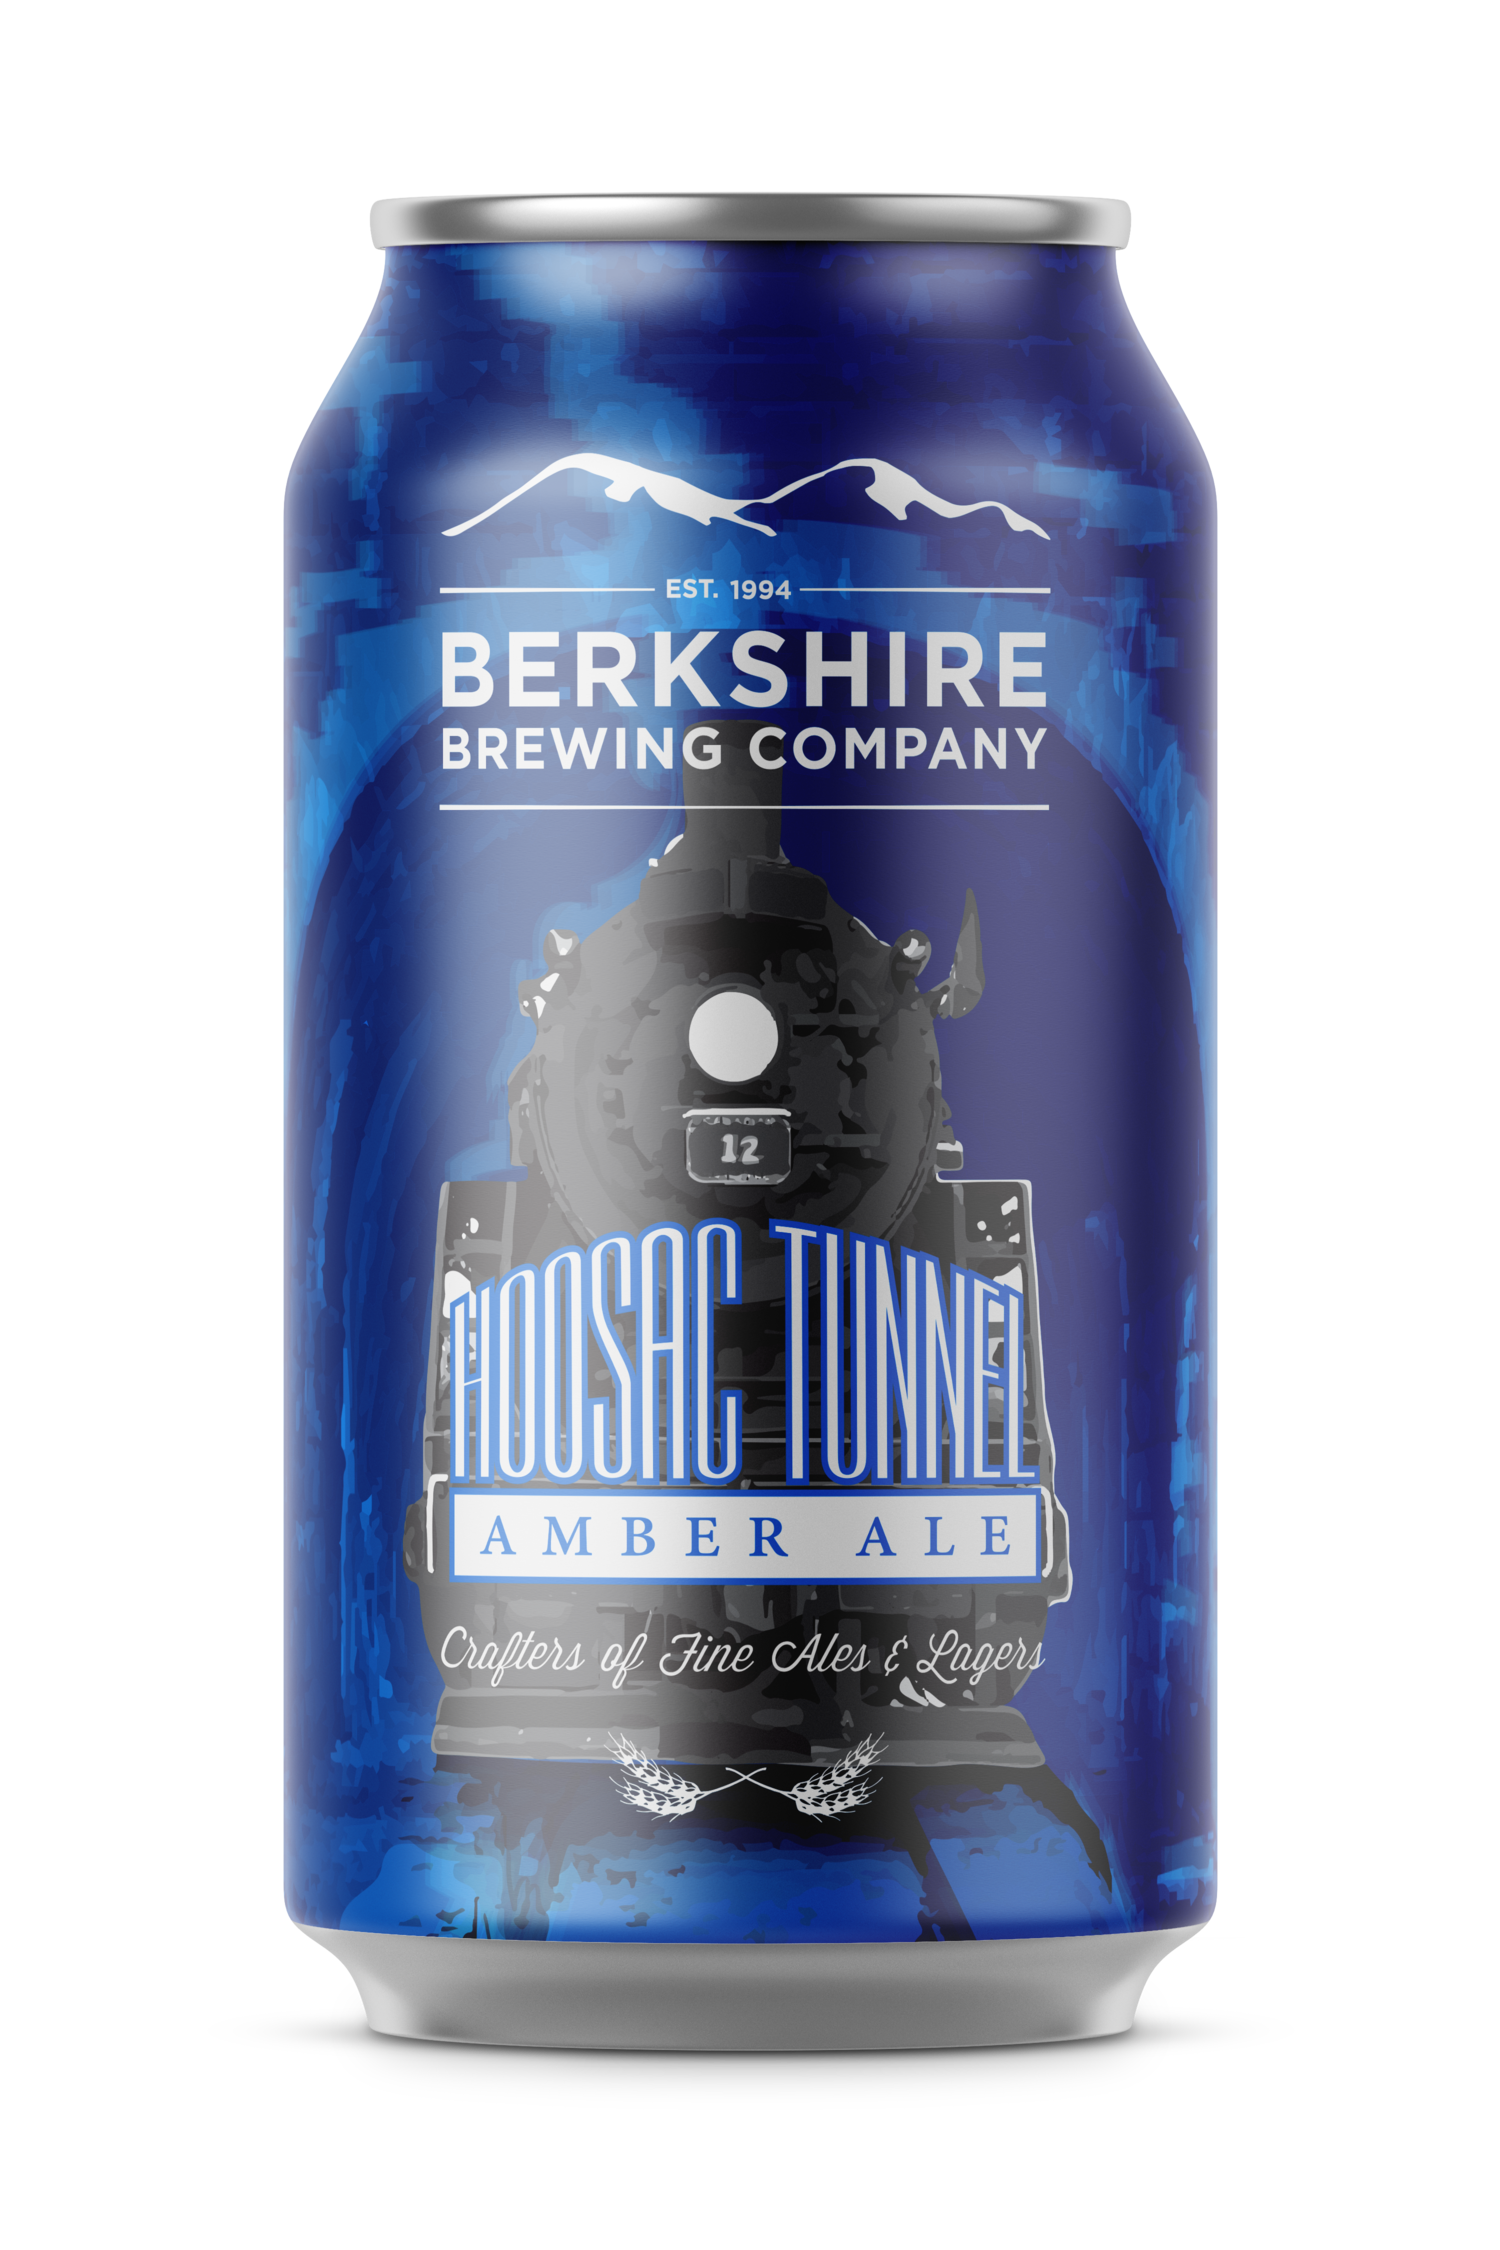 Hoosac Tunnel by Berkshire Brewing Company